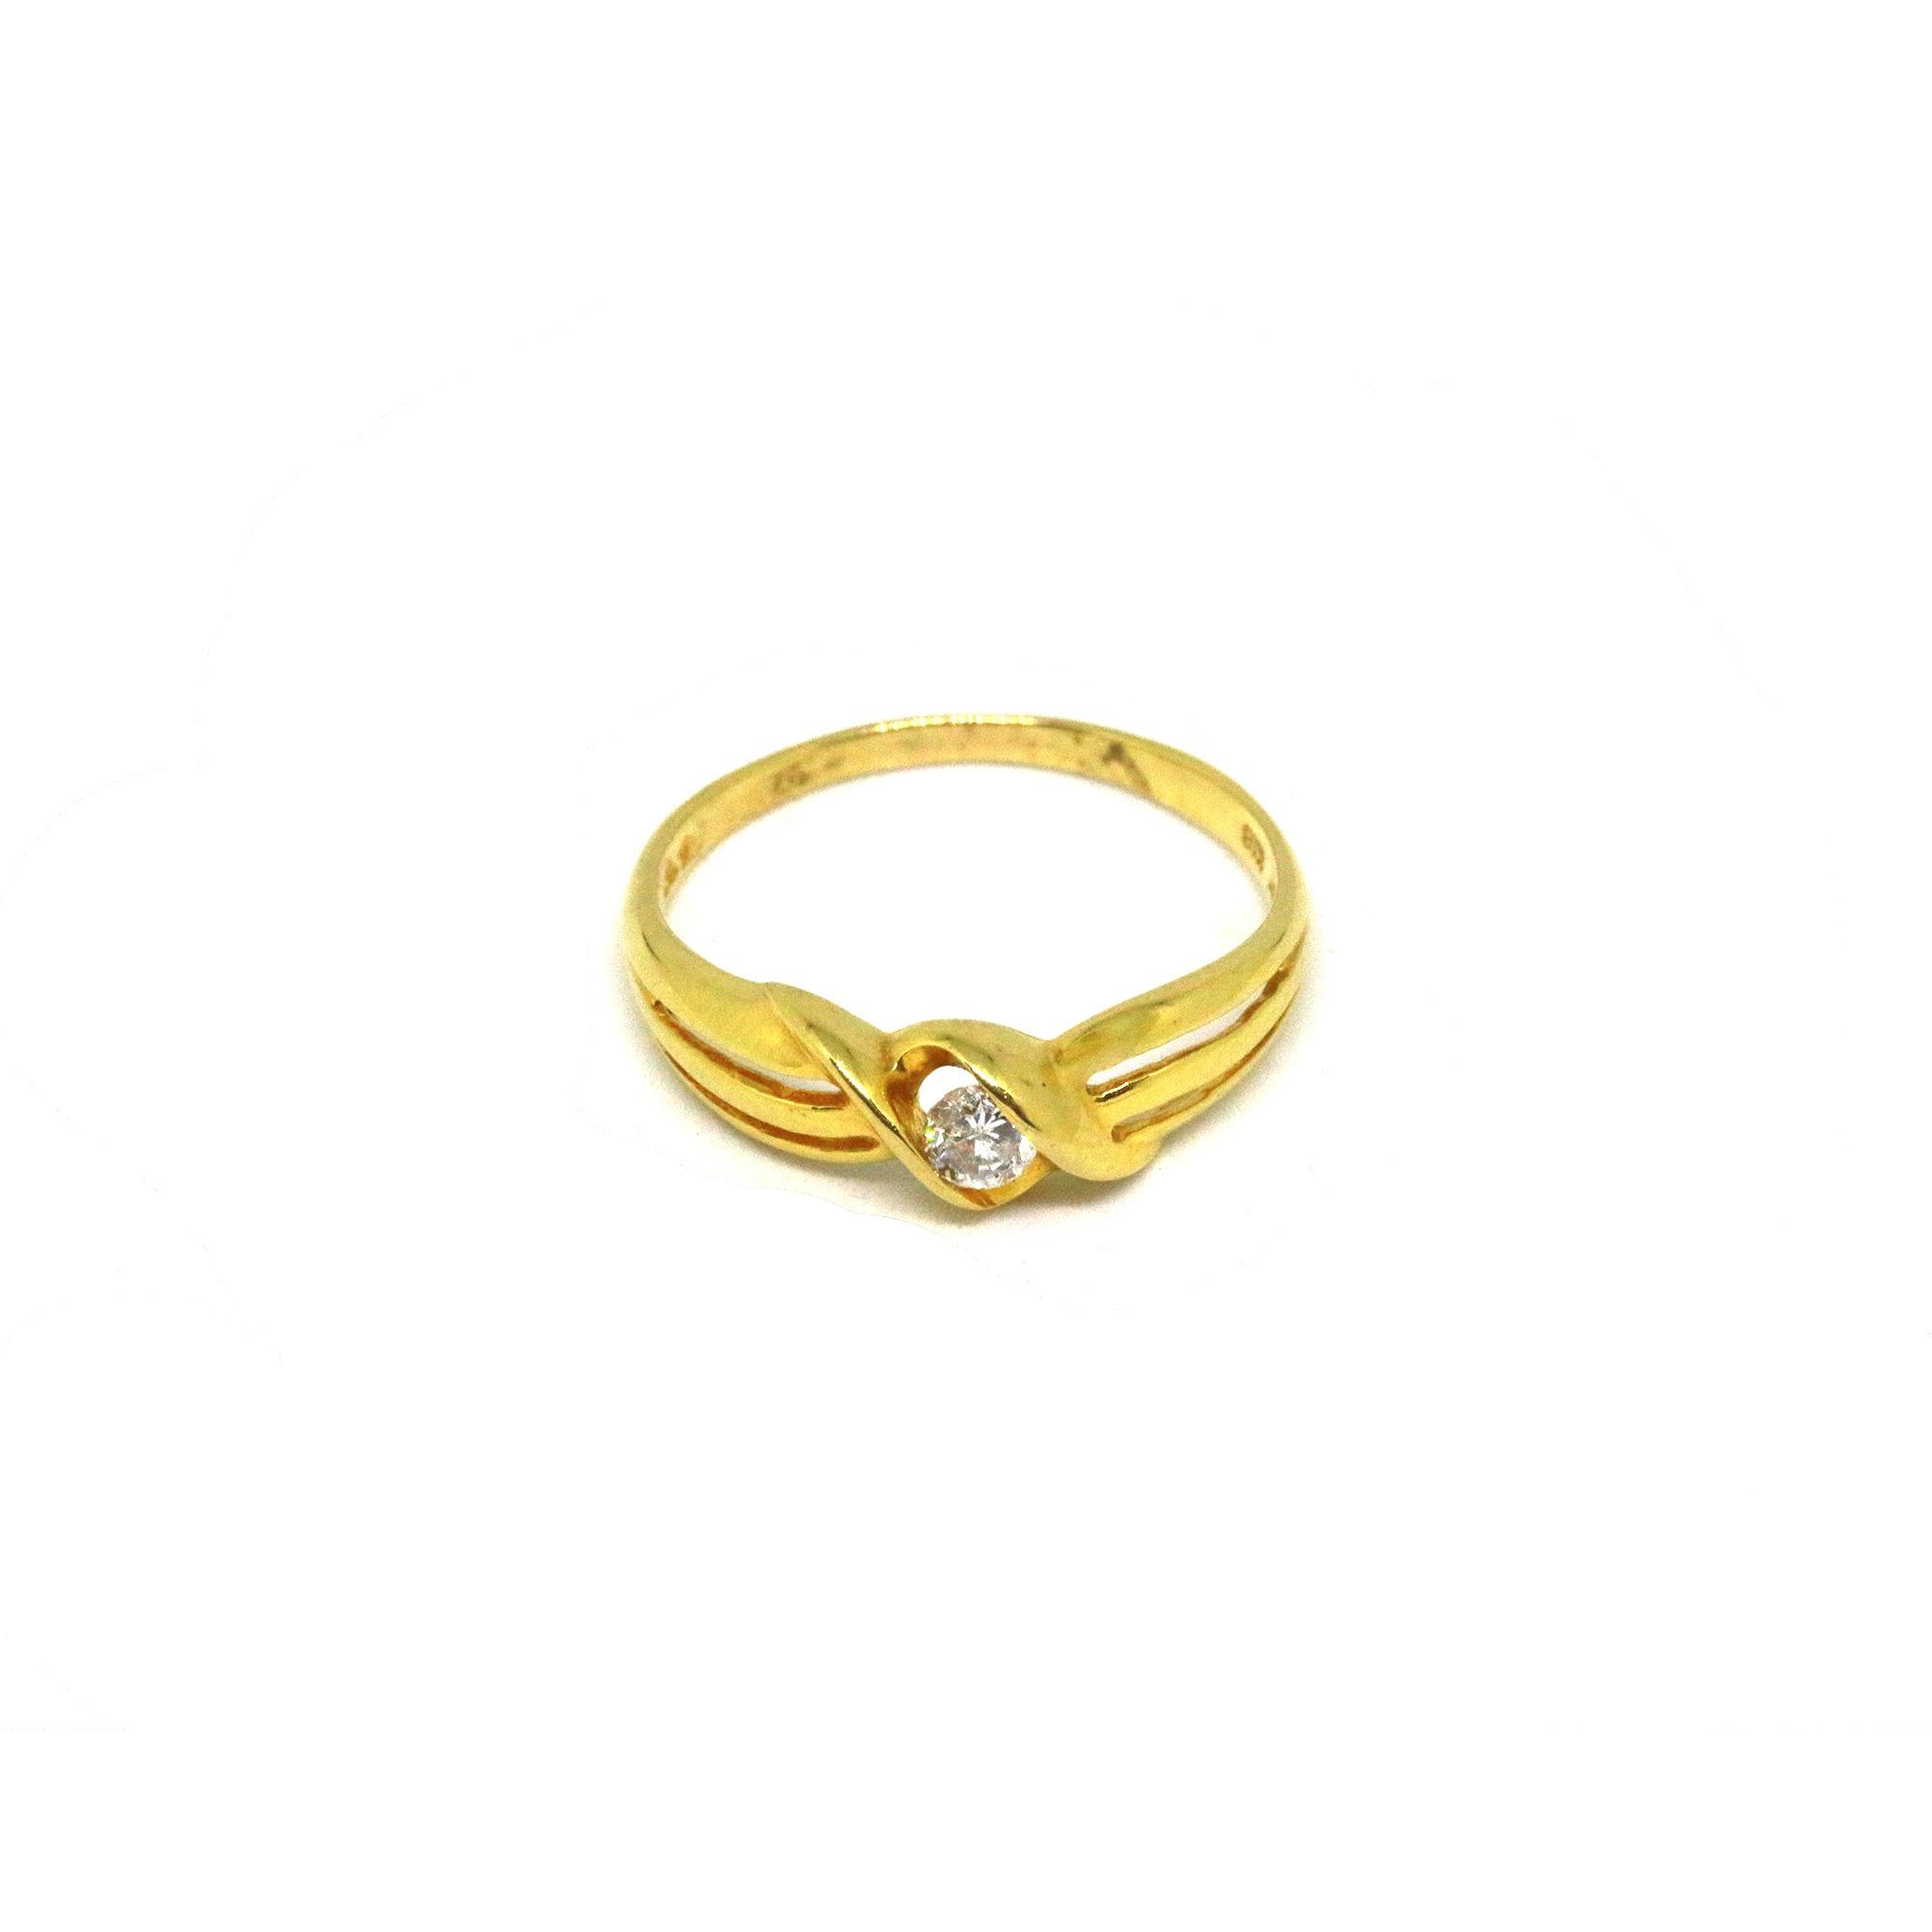 consrtruction rests gold bianca by santorini a x features kind amsterdam oyster this an which organic shaped ring open rings brandolini pearl of one pin yellow small in sauer